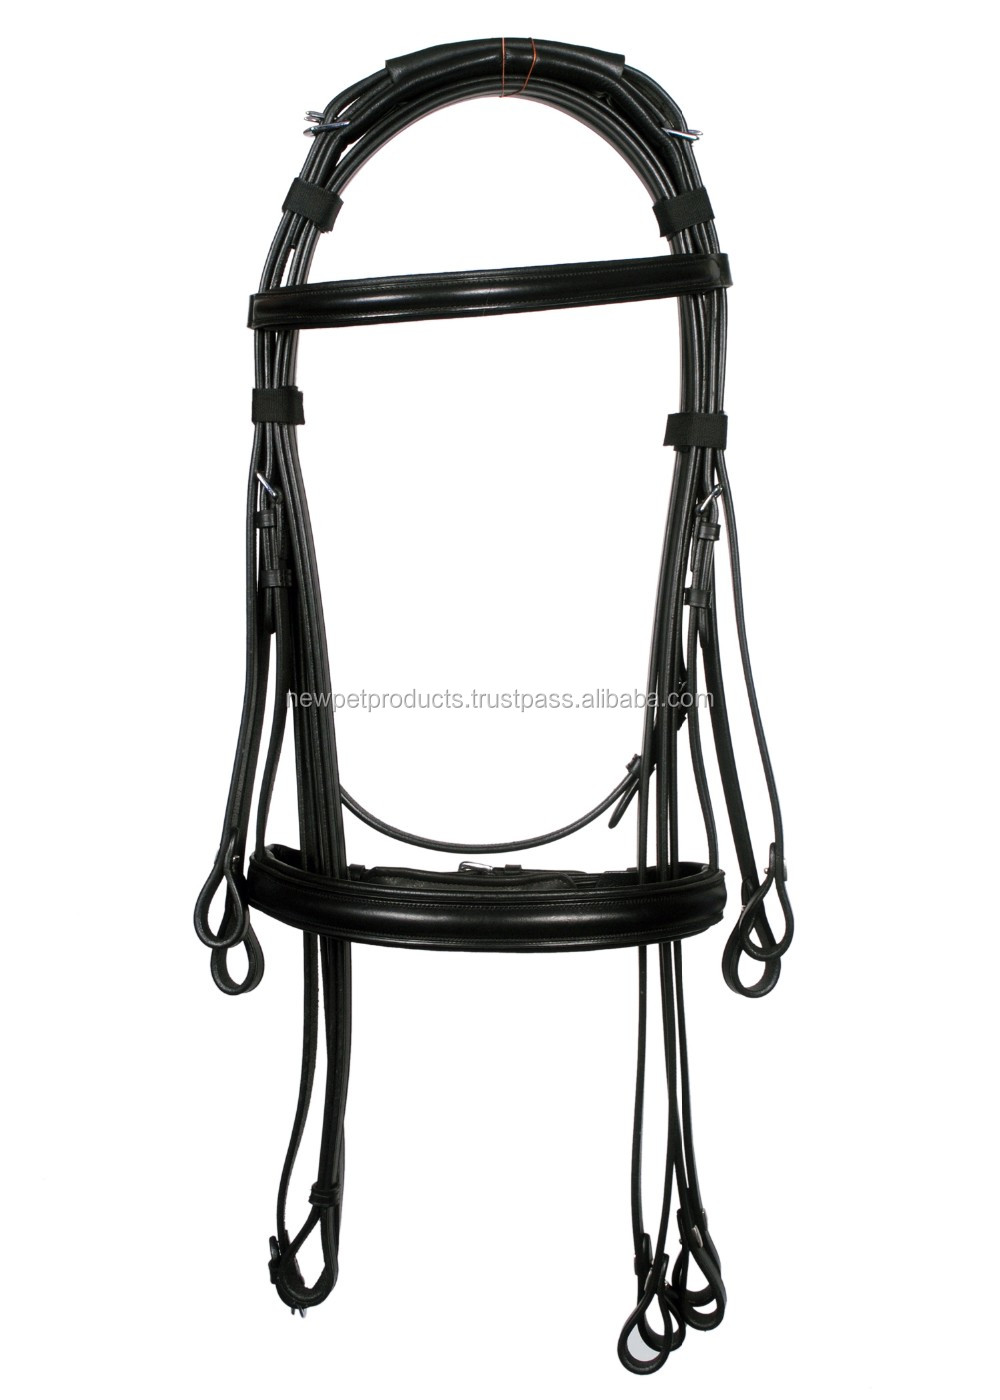 Leather Bridle Jumping